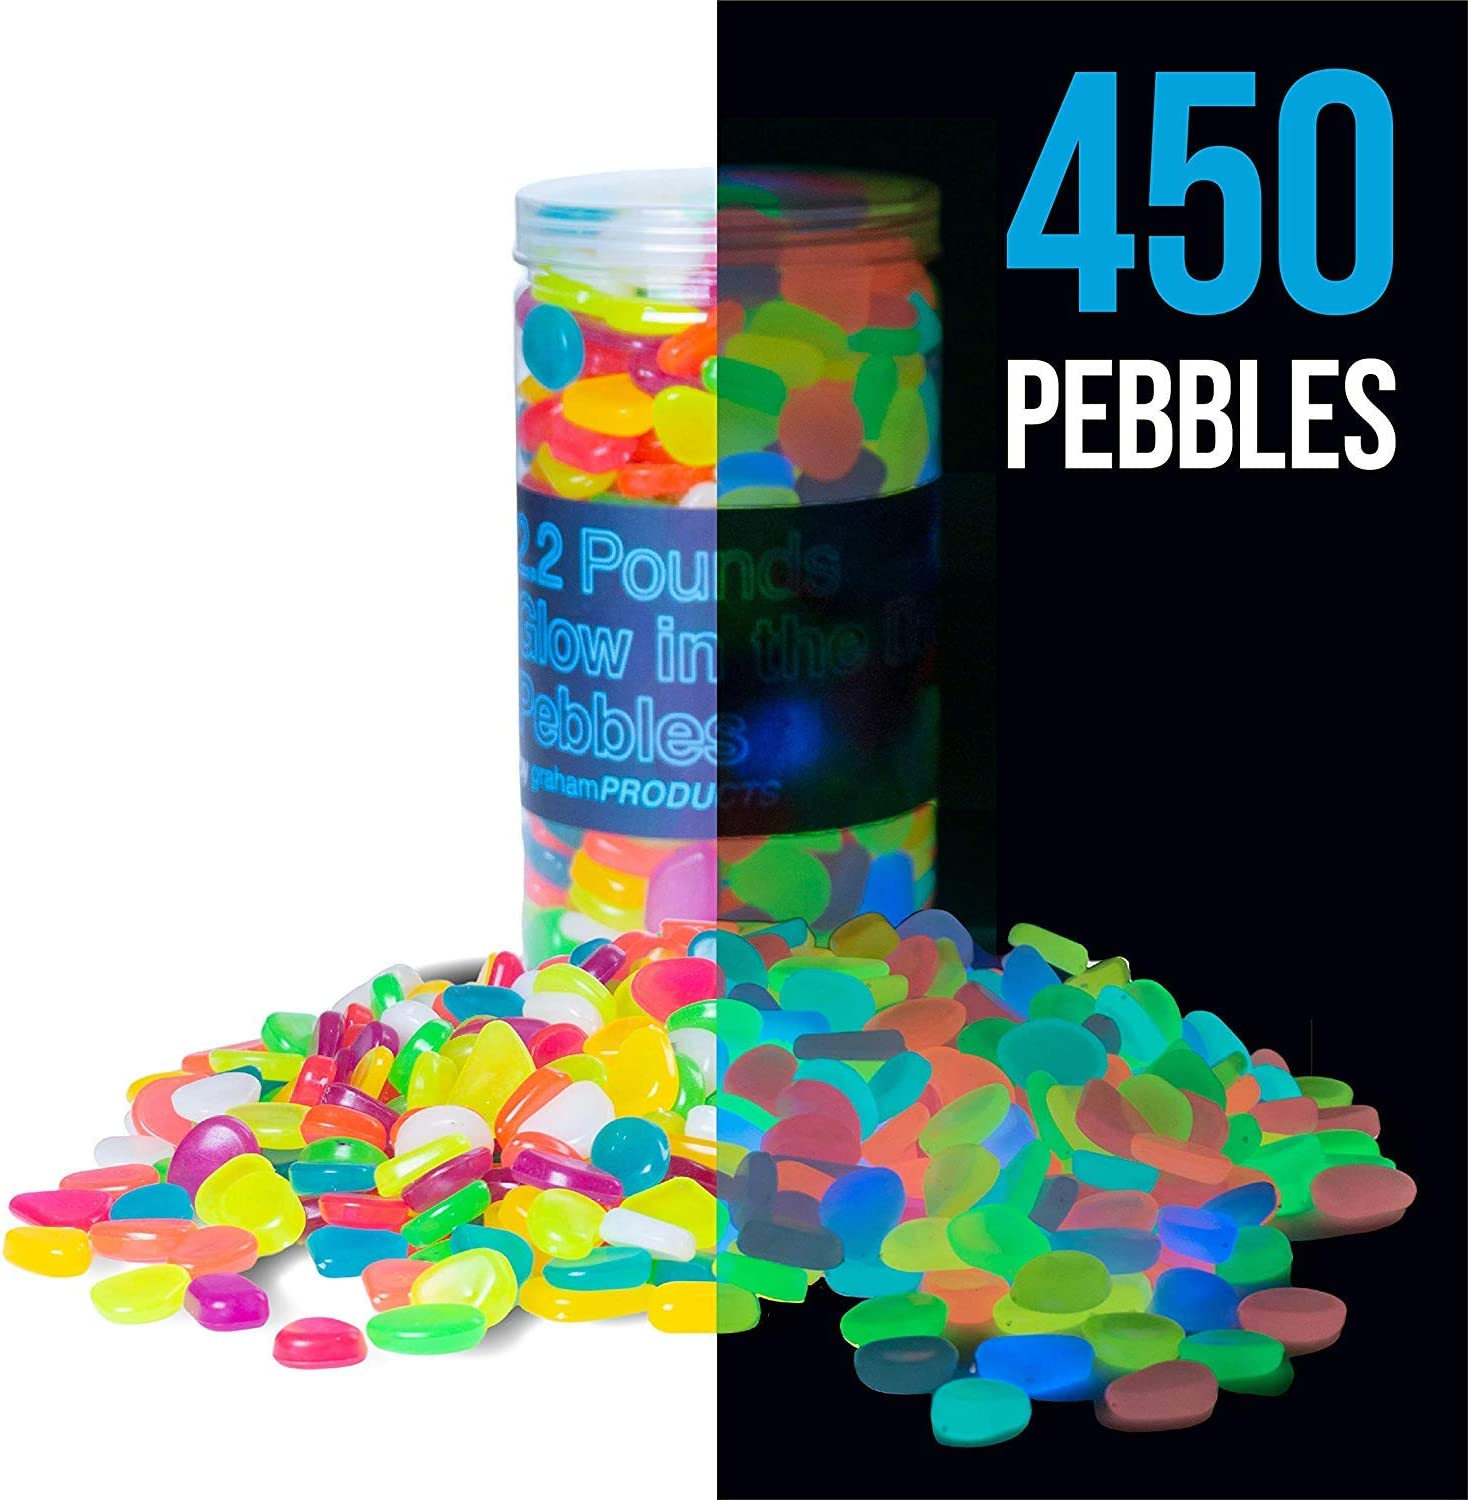 Graham Products 450 pcs, 2.2 lbs Glow in The Dark Pebbles (Multicolor) - Indoor Outdoor Zen Garden Stones, Moonlight Yard Plant Decorations, Fish Tank Aquarium Rocks, Solar Backyard LED Patio Decor